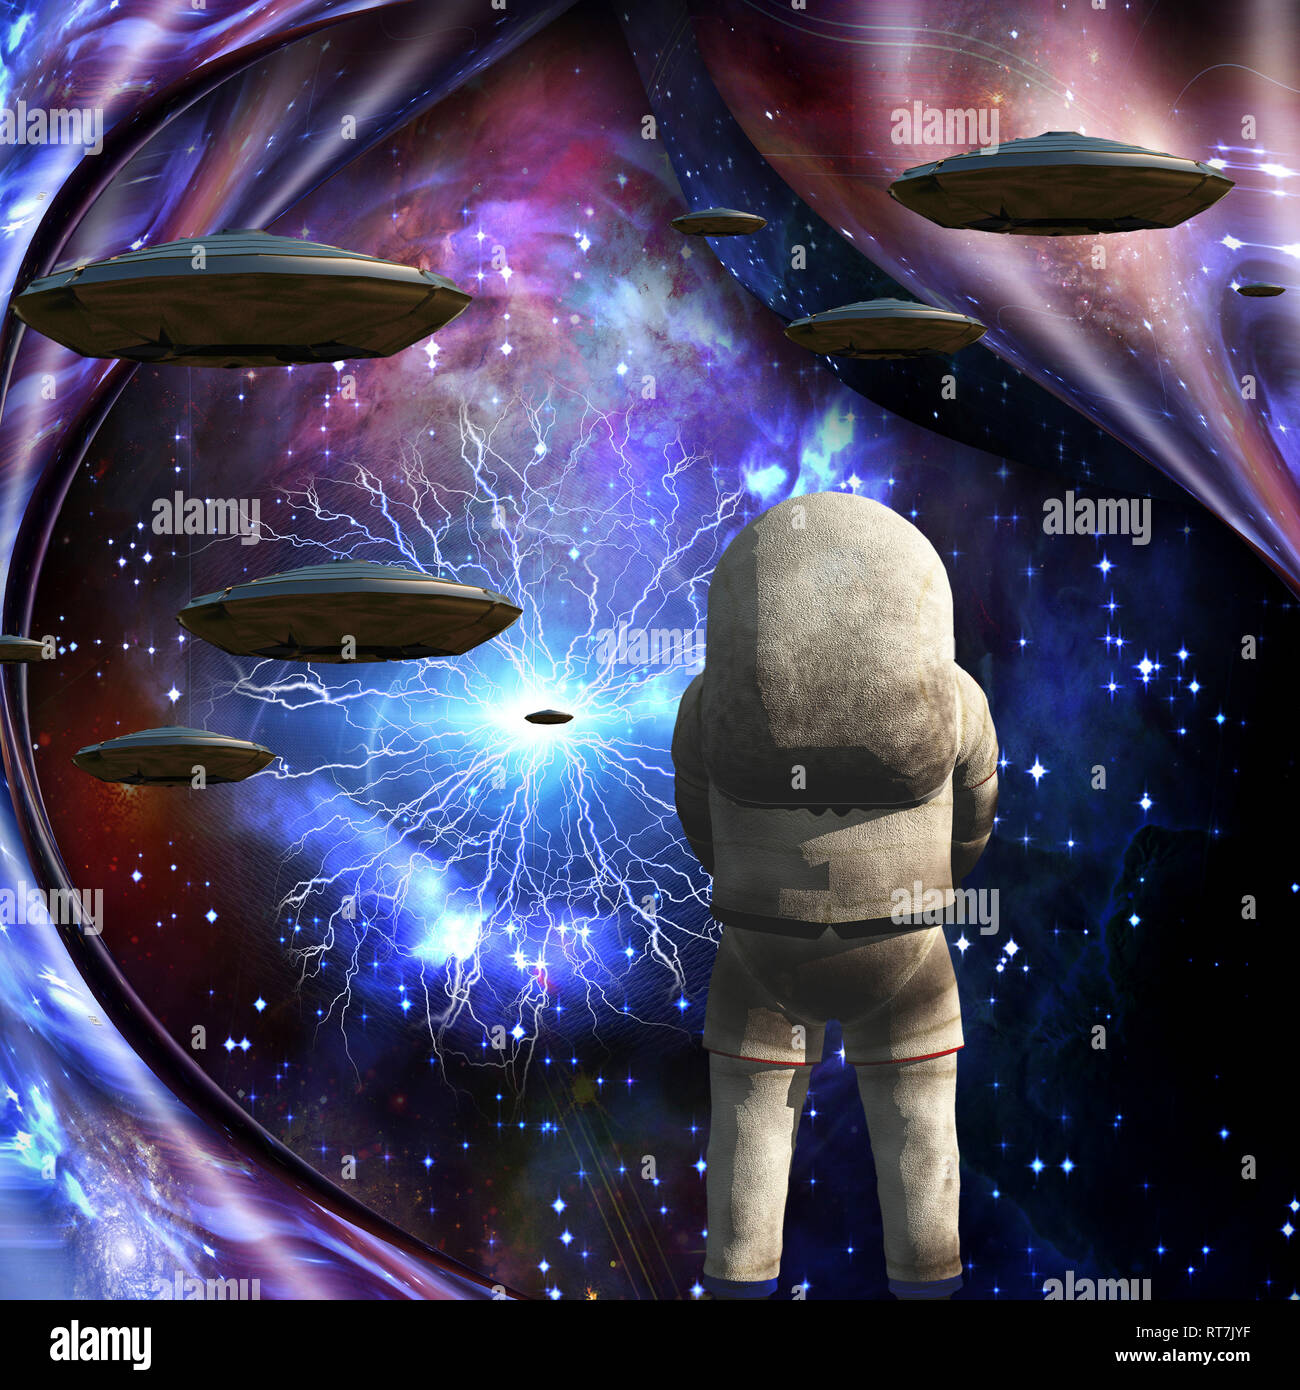 Flying saucers in deep space. Astronaut. Warped space. - Stock Image